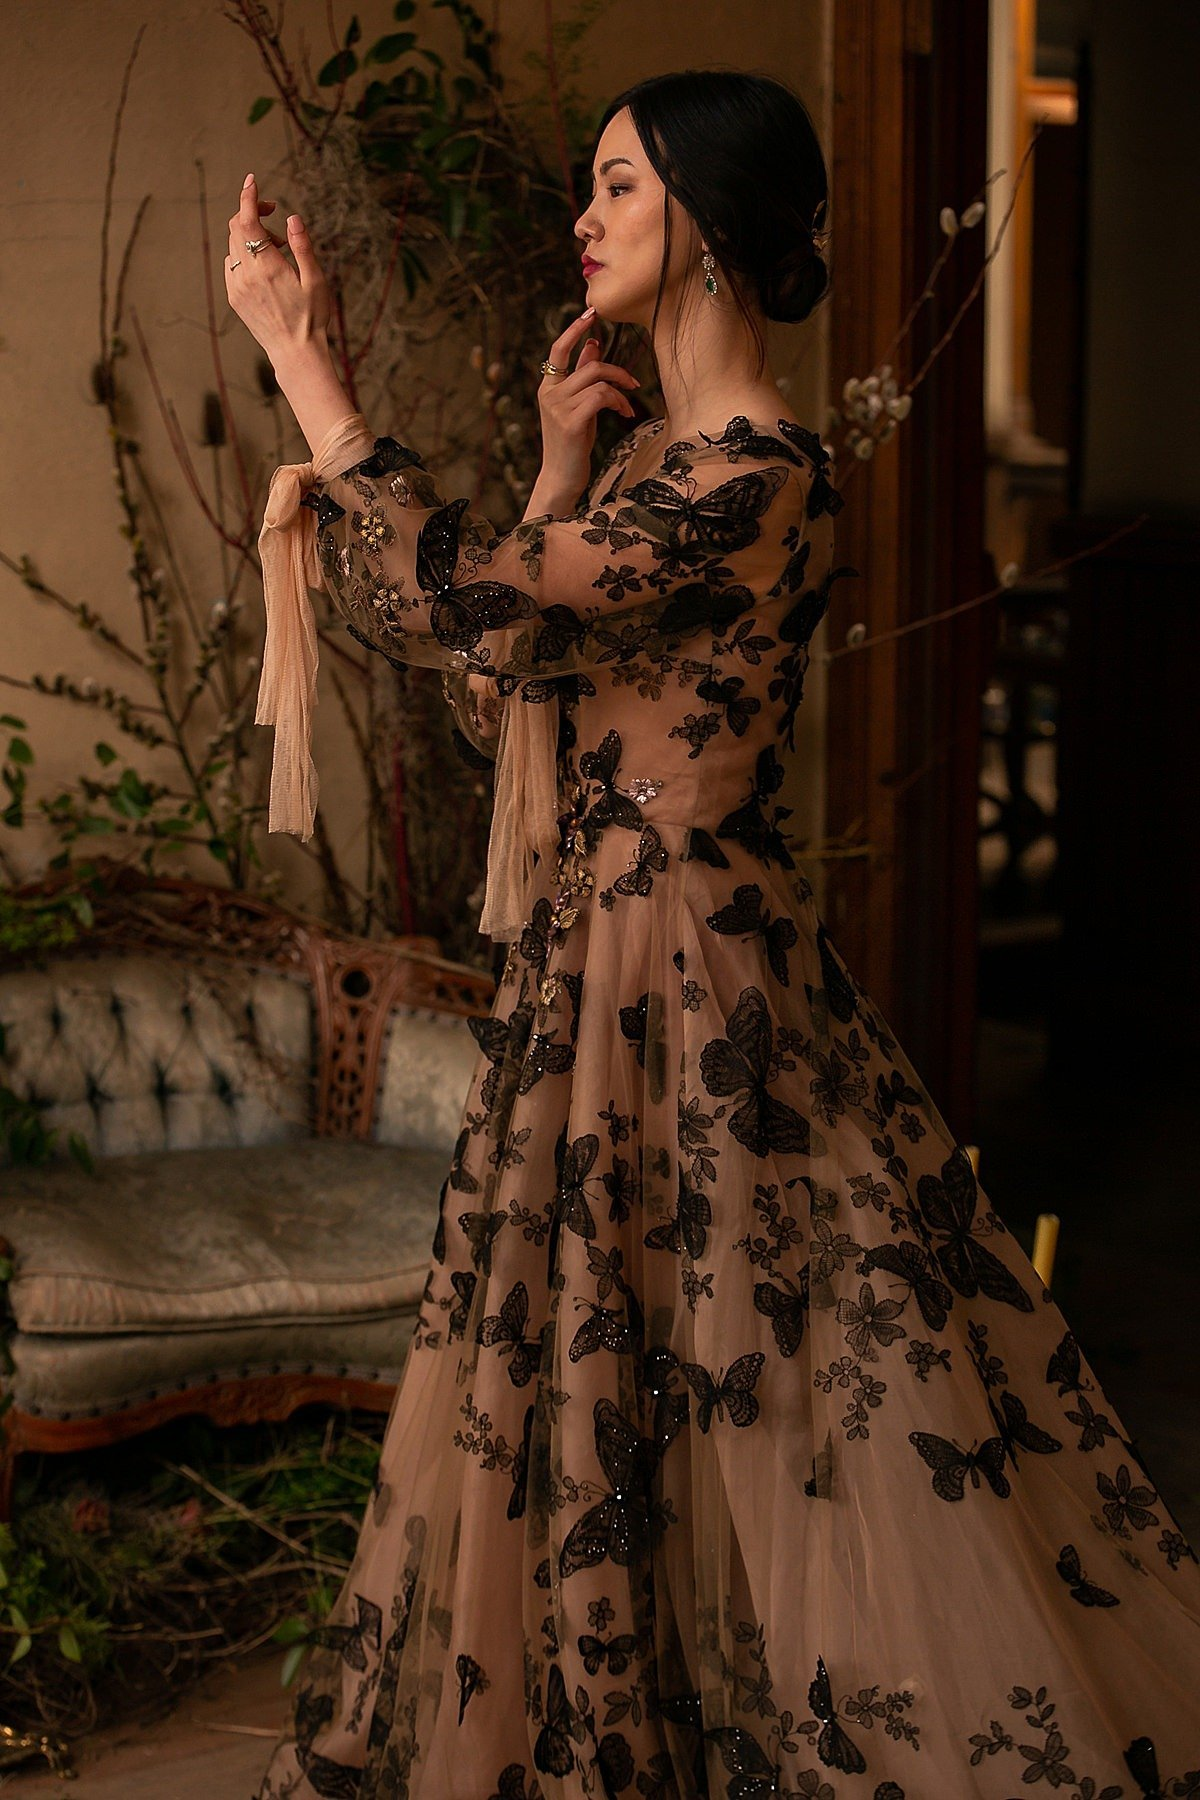 Butterfly Gown - JoanneFlemingDesign - TheNorthway-249_WEB